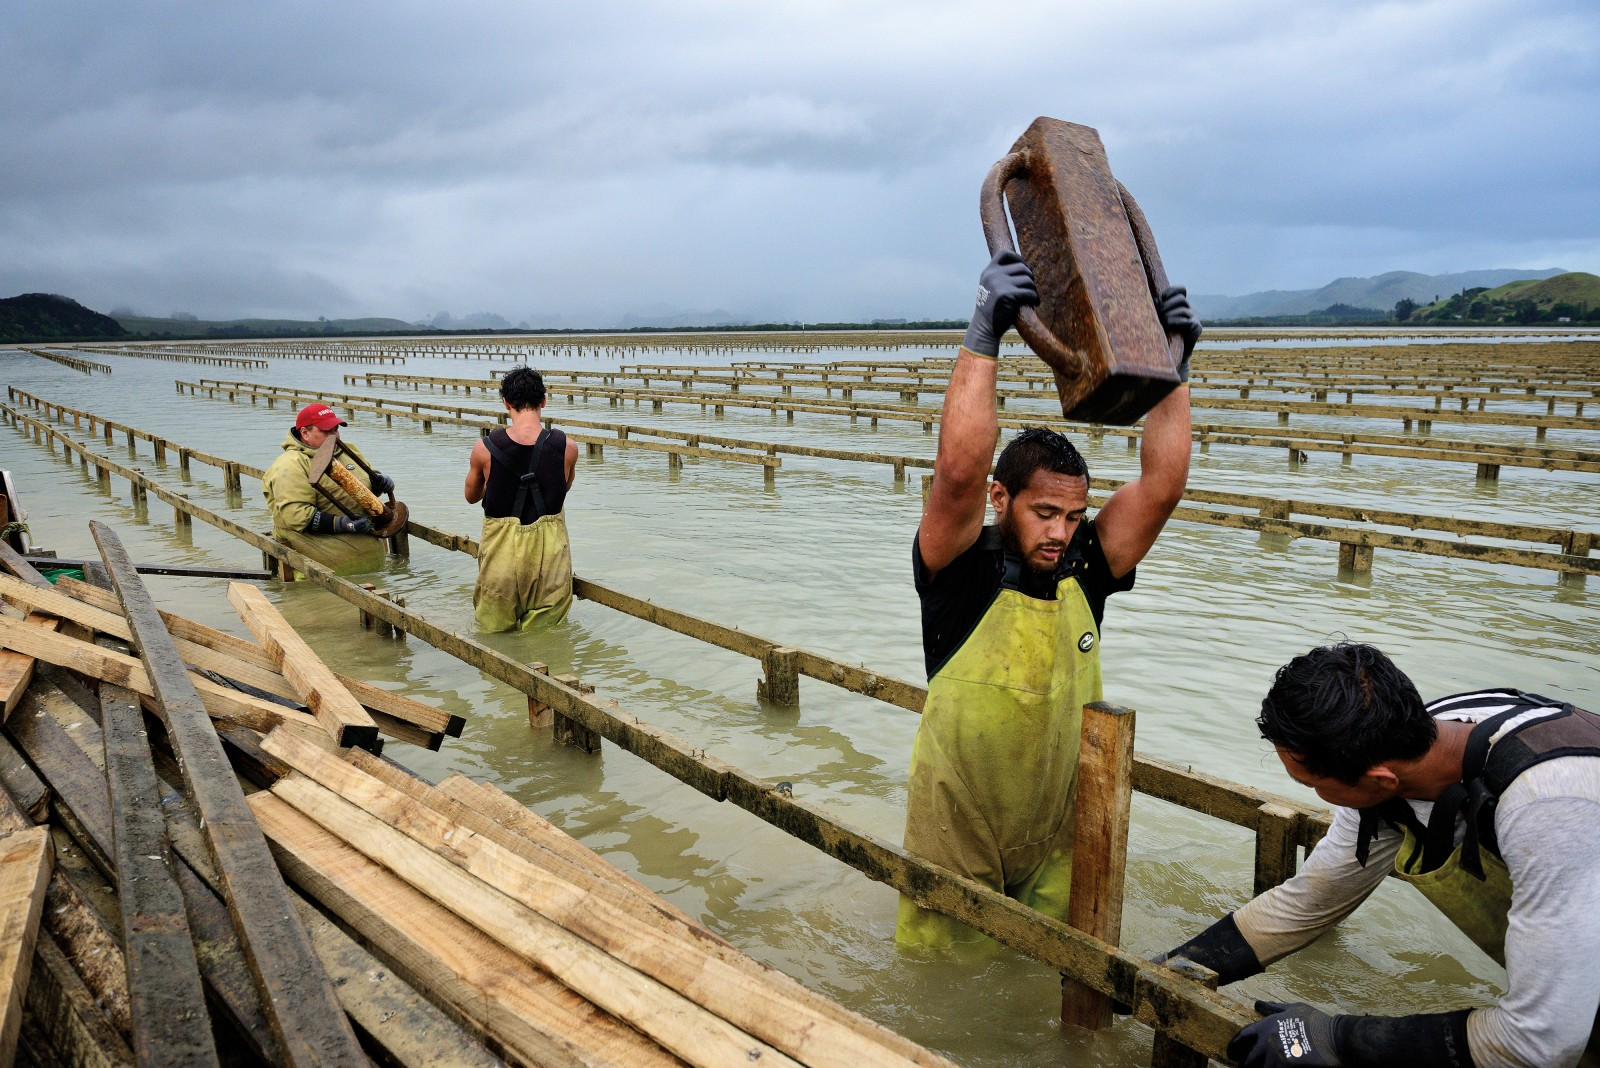 Strong arms and a steady eye are needed by Campbell Davies-Takimoana as he rams new posts into the sediment at Pacific Marine's oyster farm at the head of Whangaroa Harbour. Aquaculture is an important industry in the area, but not everyone is keen to see it expand. Some residents would prefer to see the harbour become a maritime park, figuring that tourism would be a better long-term investment.